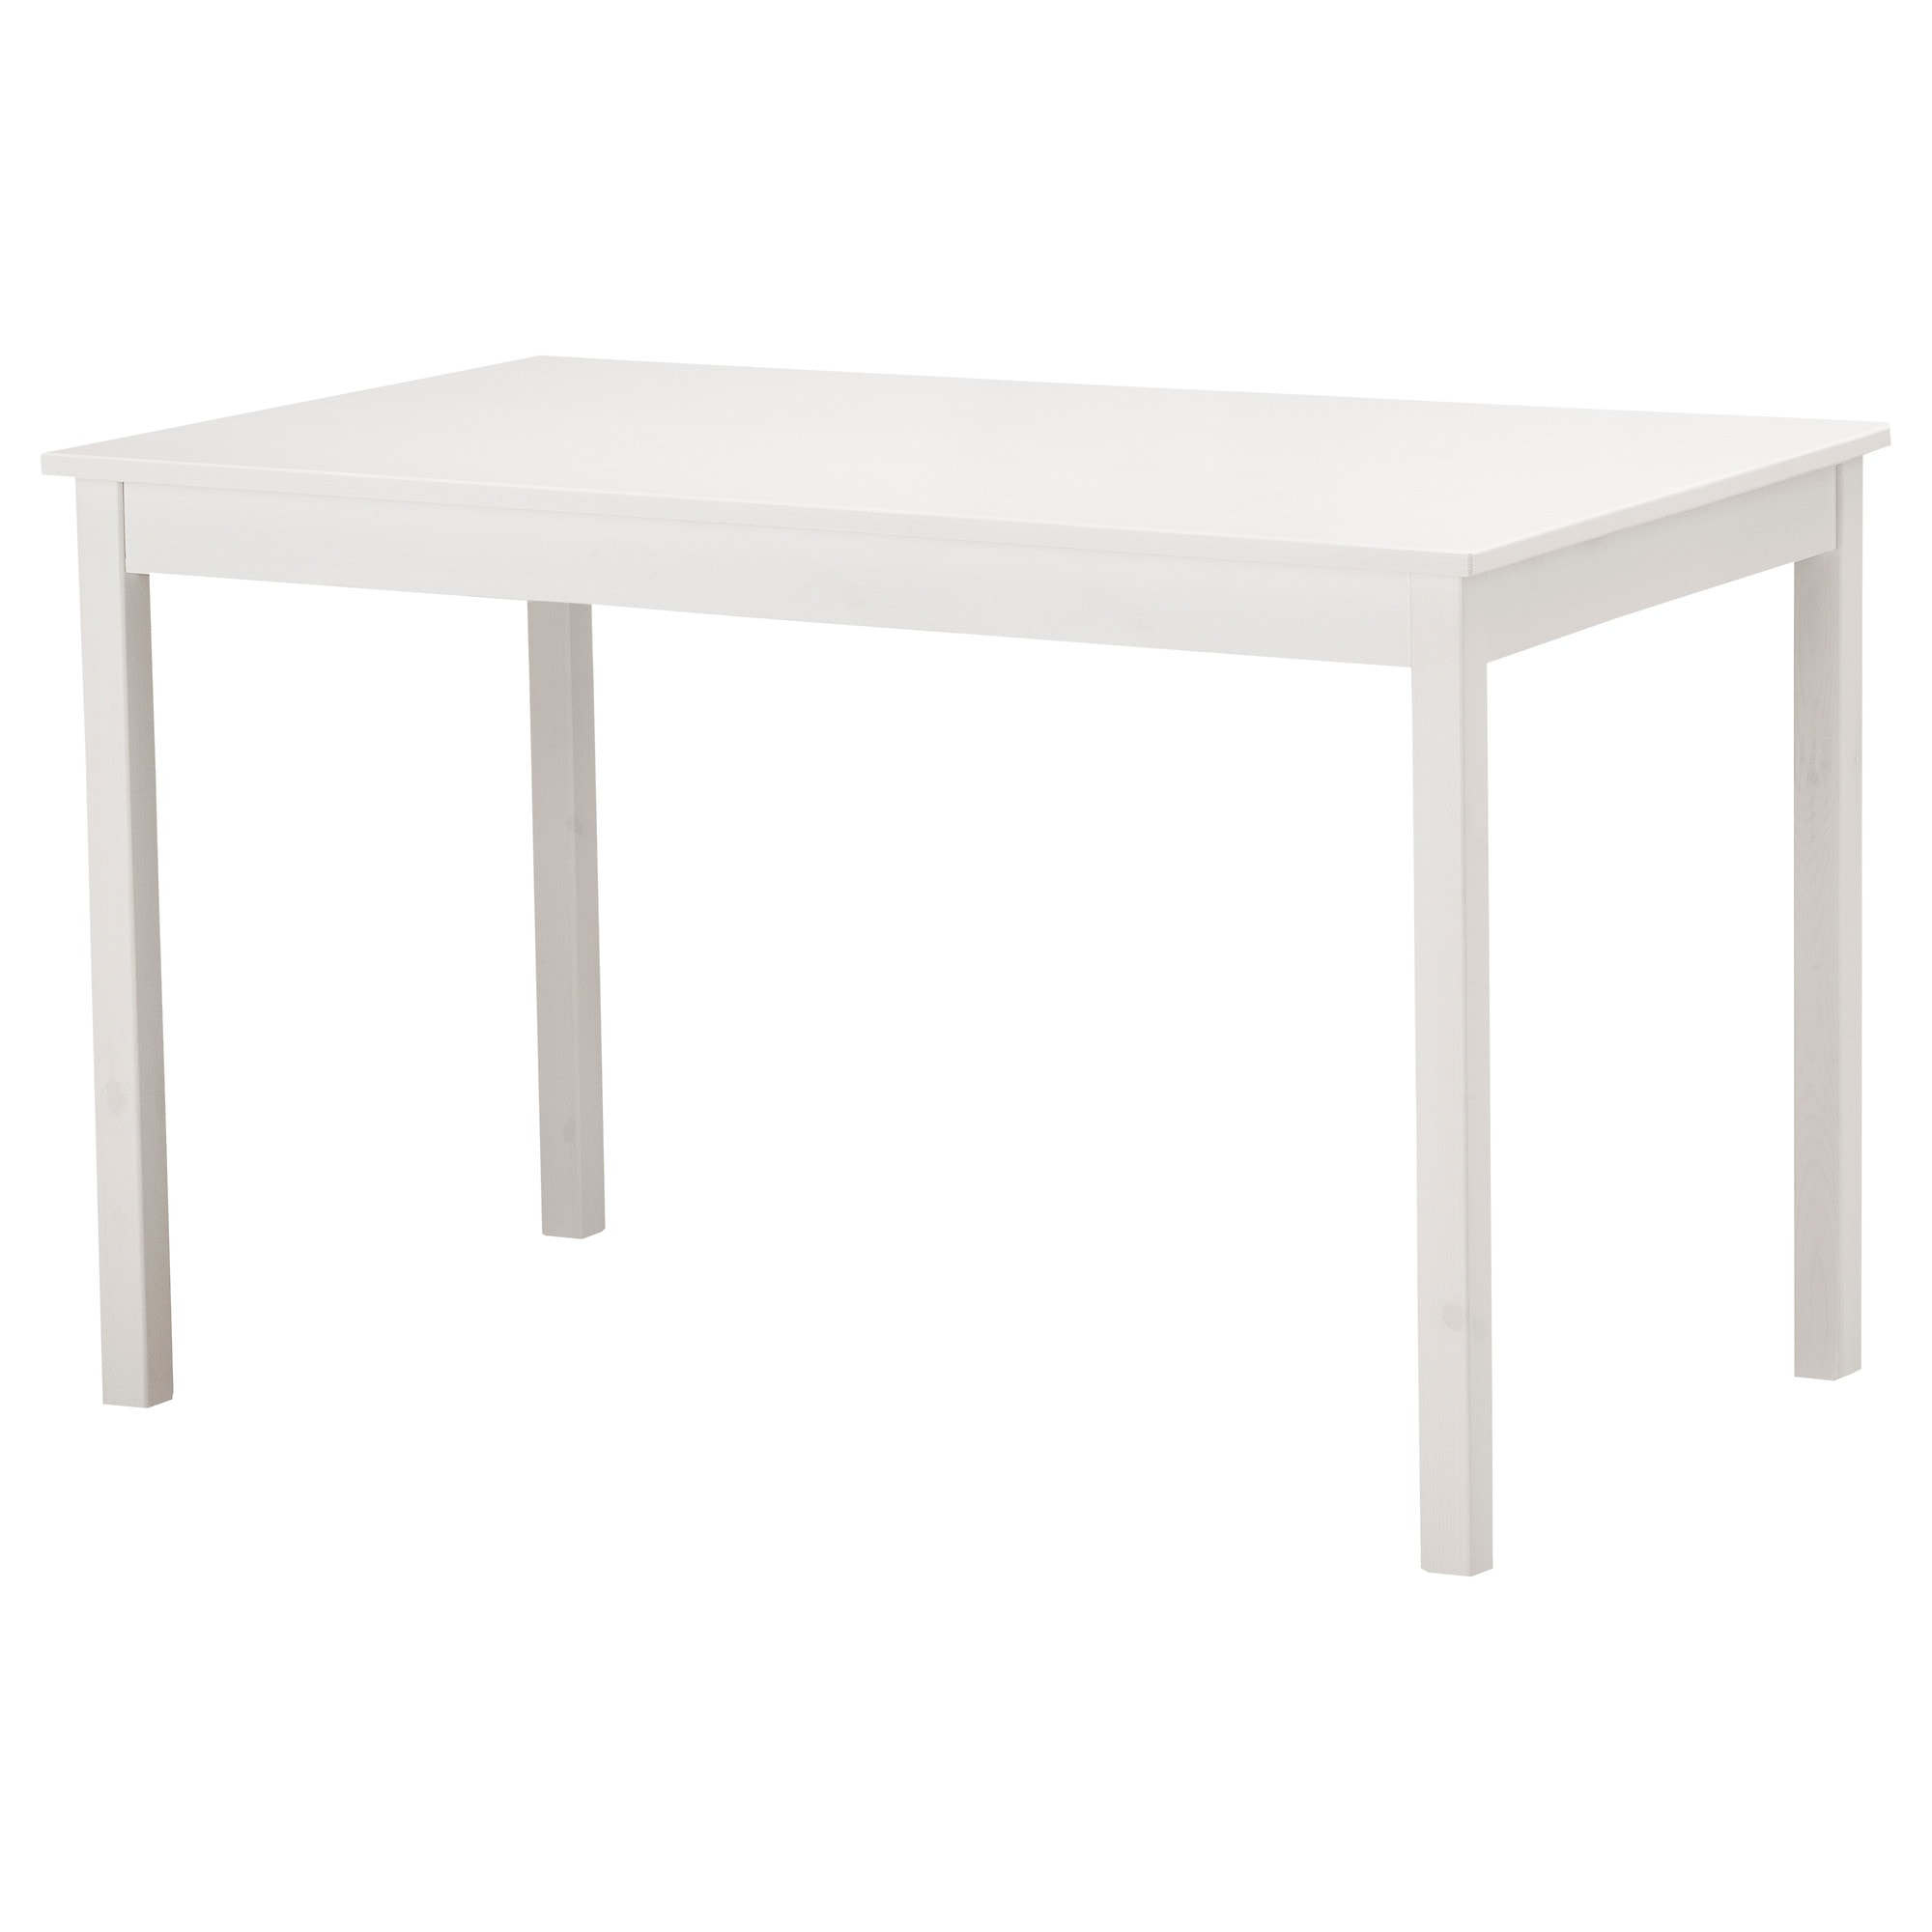 –LMSTAD Table IKEA